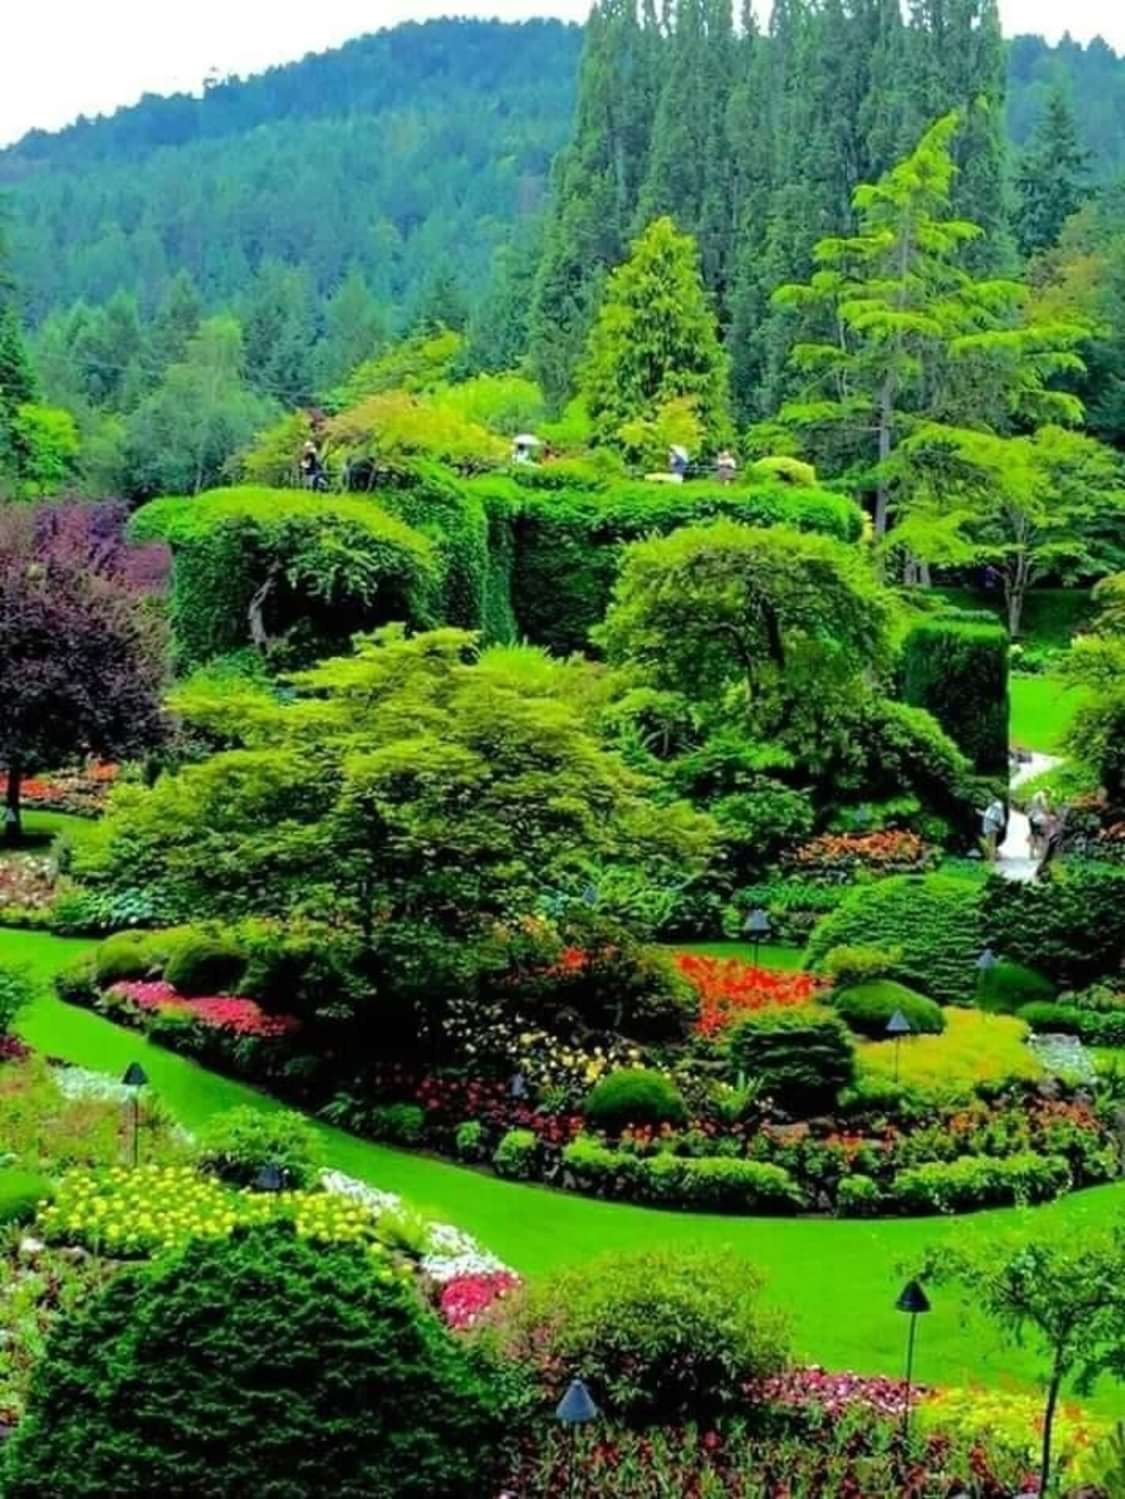 Beautiful nature attraction 🥰 ️ ️ Butchart gardens